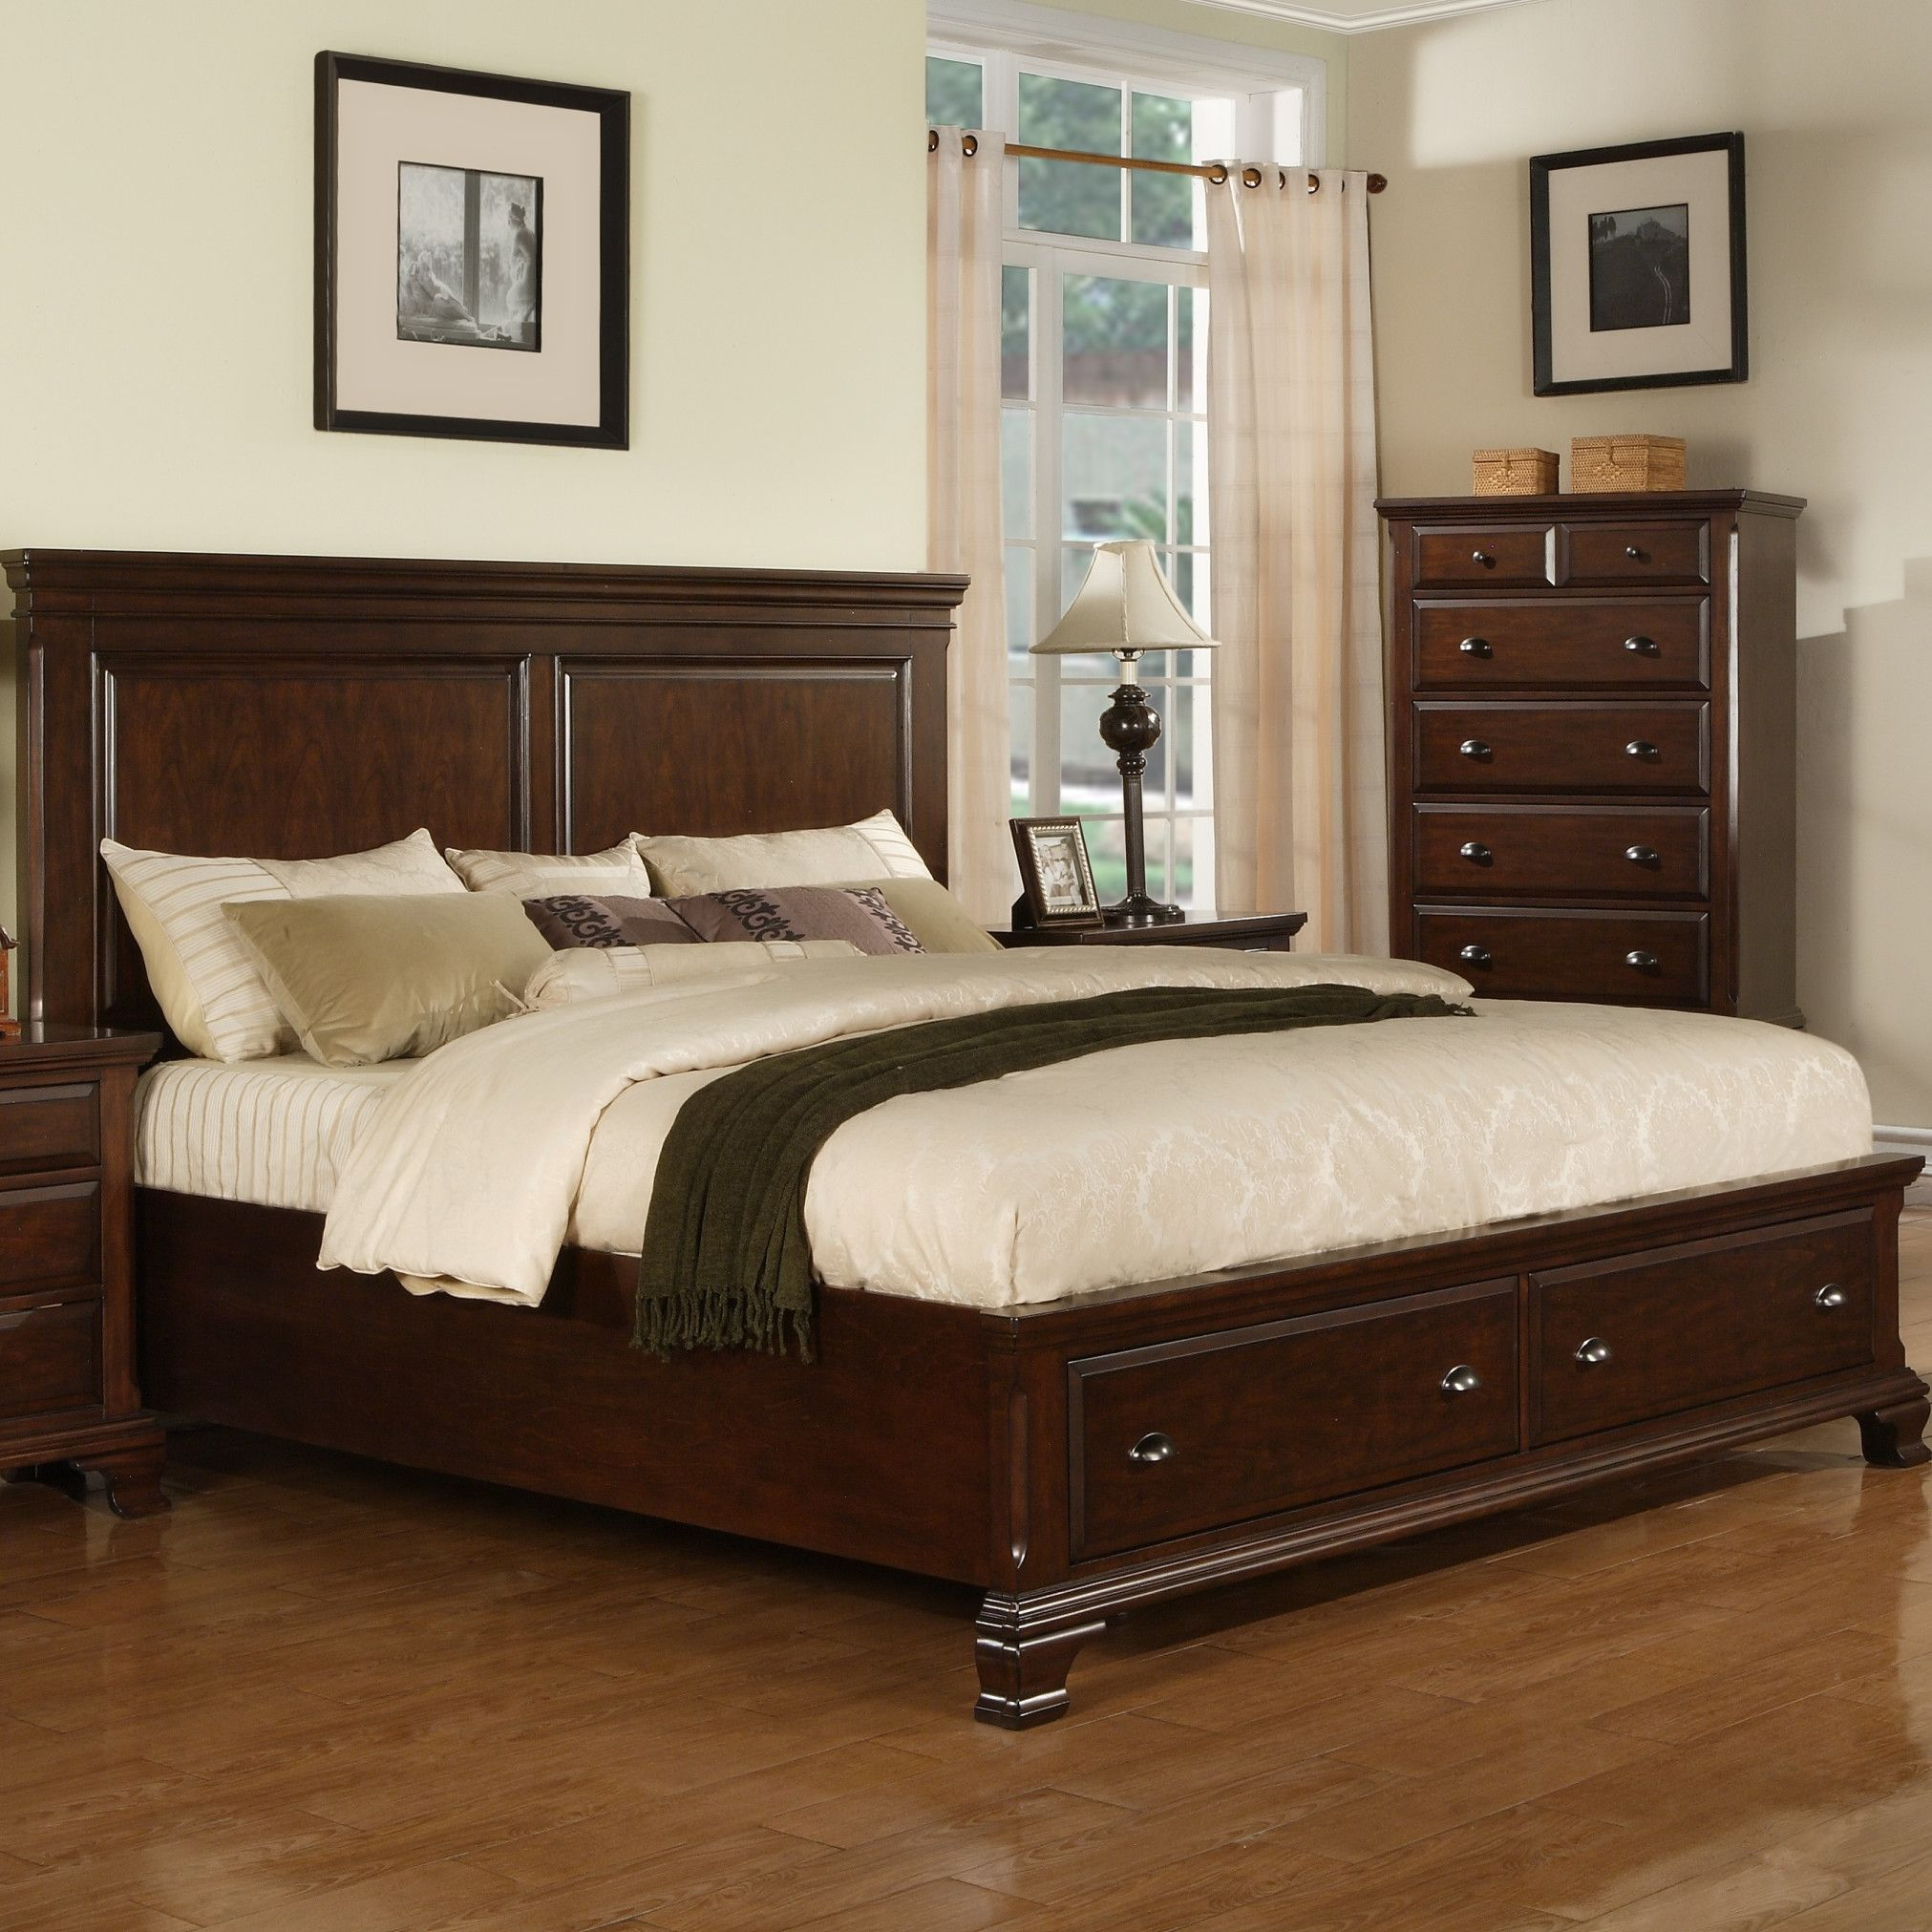 Picket house furnishings grant storage panel bed bed project